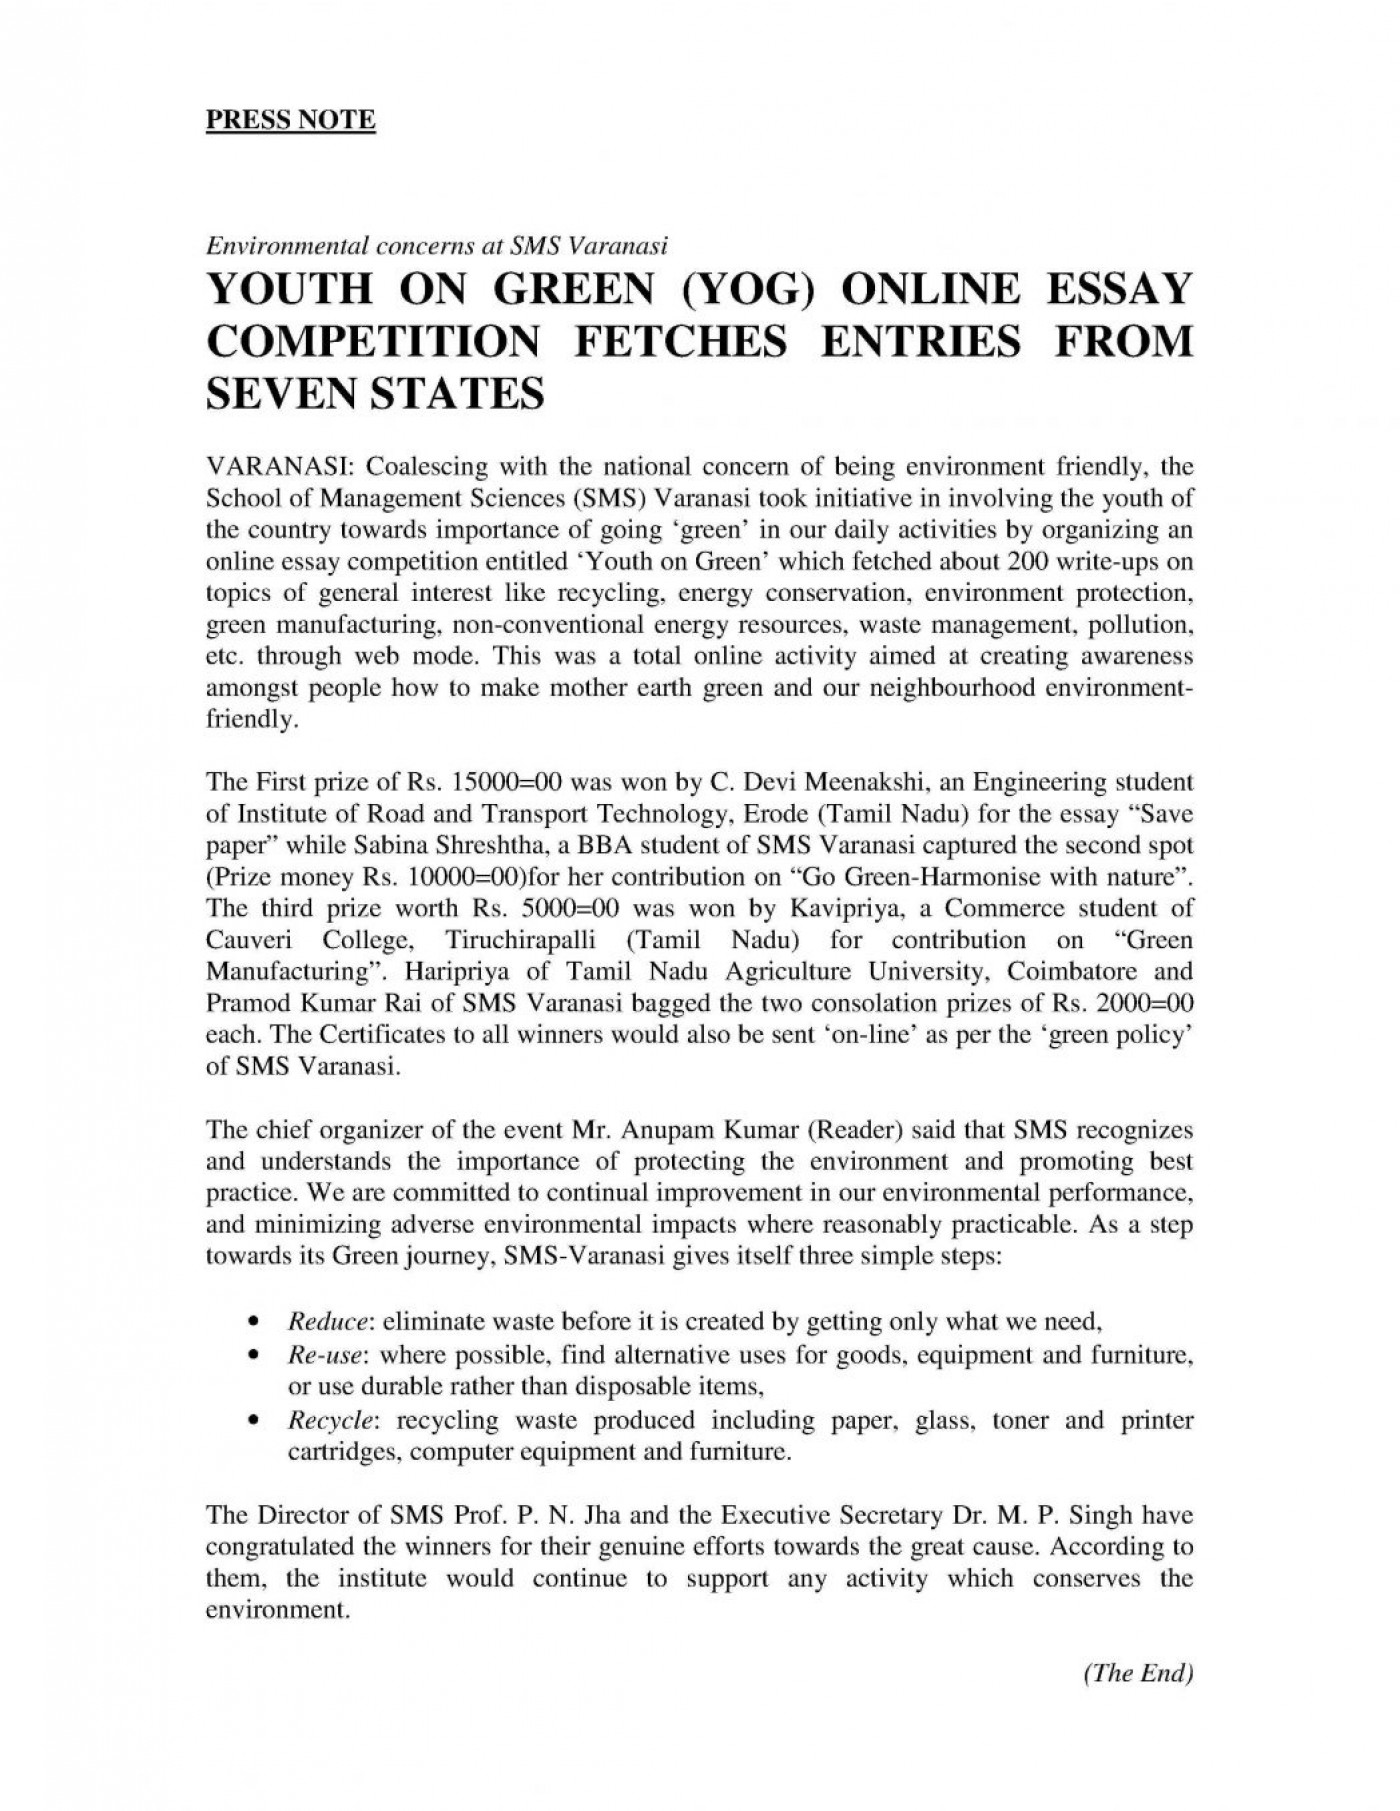 020 Best Essays For College Essay On Good Habits How Tot Application Online Yog Press Re About Yourself Examples Your Background Failure Prompt Off Hook 1048x1356 Example Amazing To Start An Analysis A Book Ways With Question Two Books 1400